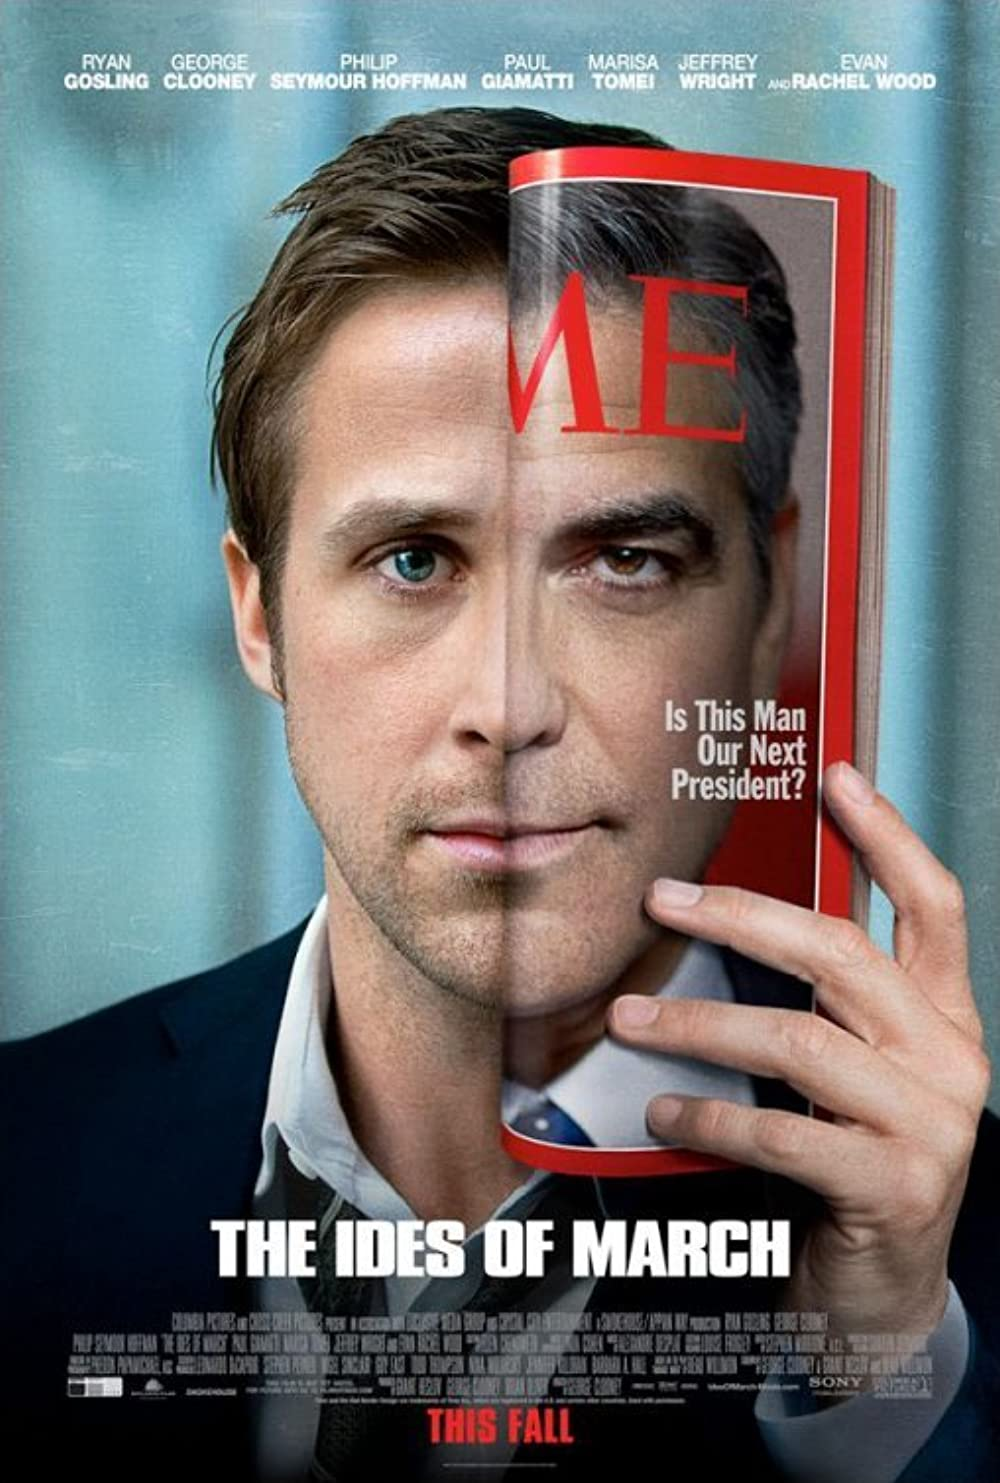 The Ides of March - Tage des Verrats: Directed by George Clooney. With Ryan Gosling, George Clooney, Philip Seymour Hoffman, Paul Giamatti. An idealistic staffer for a new presidential candidate gets a crash course on dirty politics during his stint...